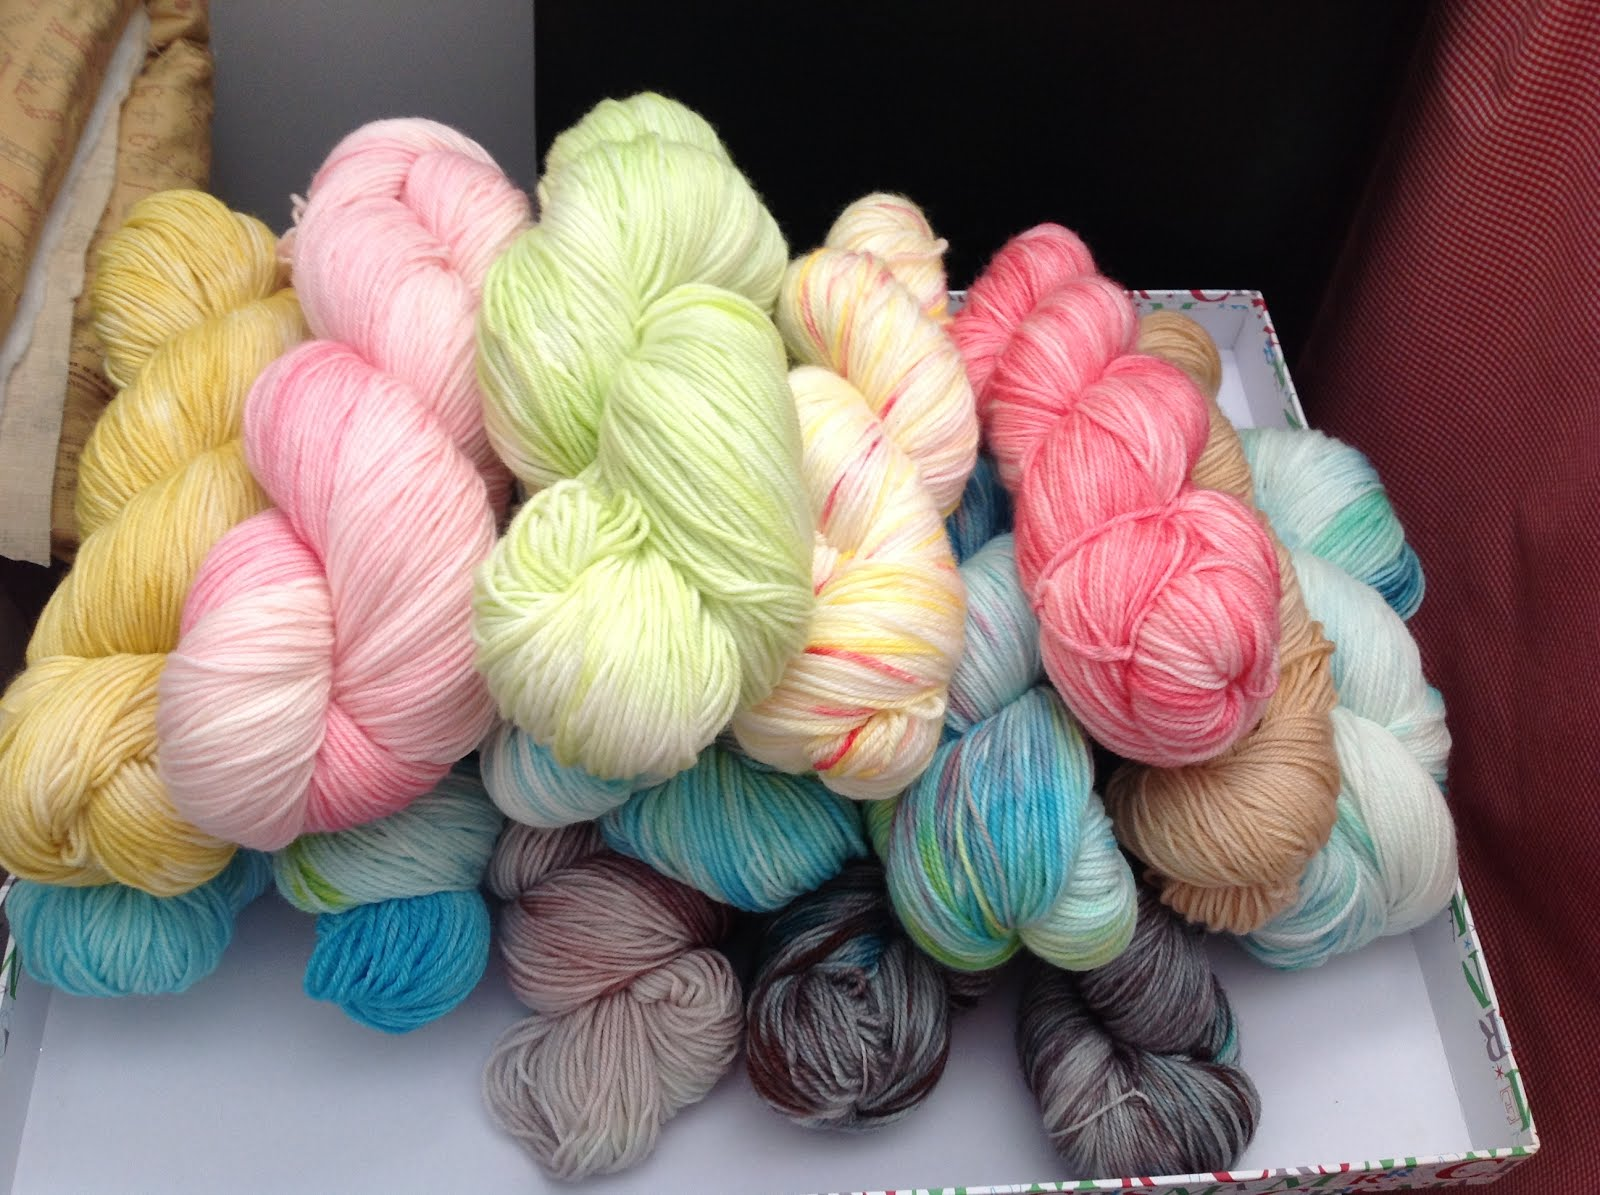 My Yarn Shop